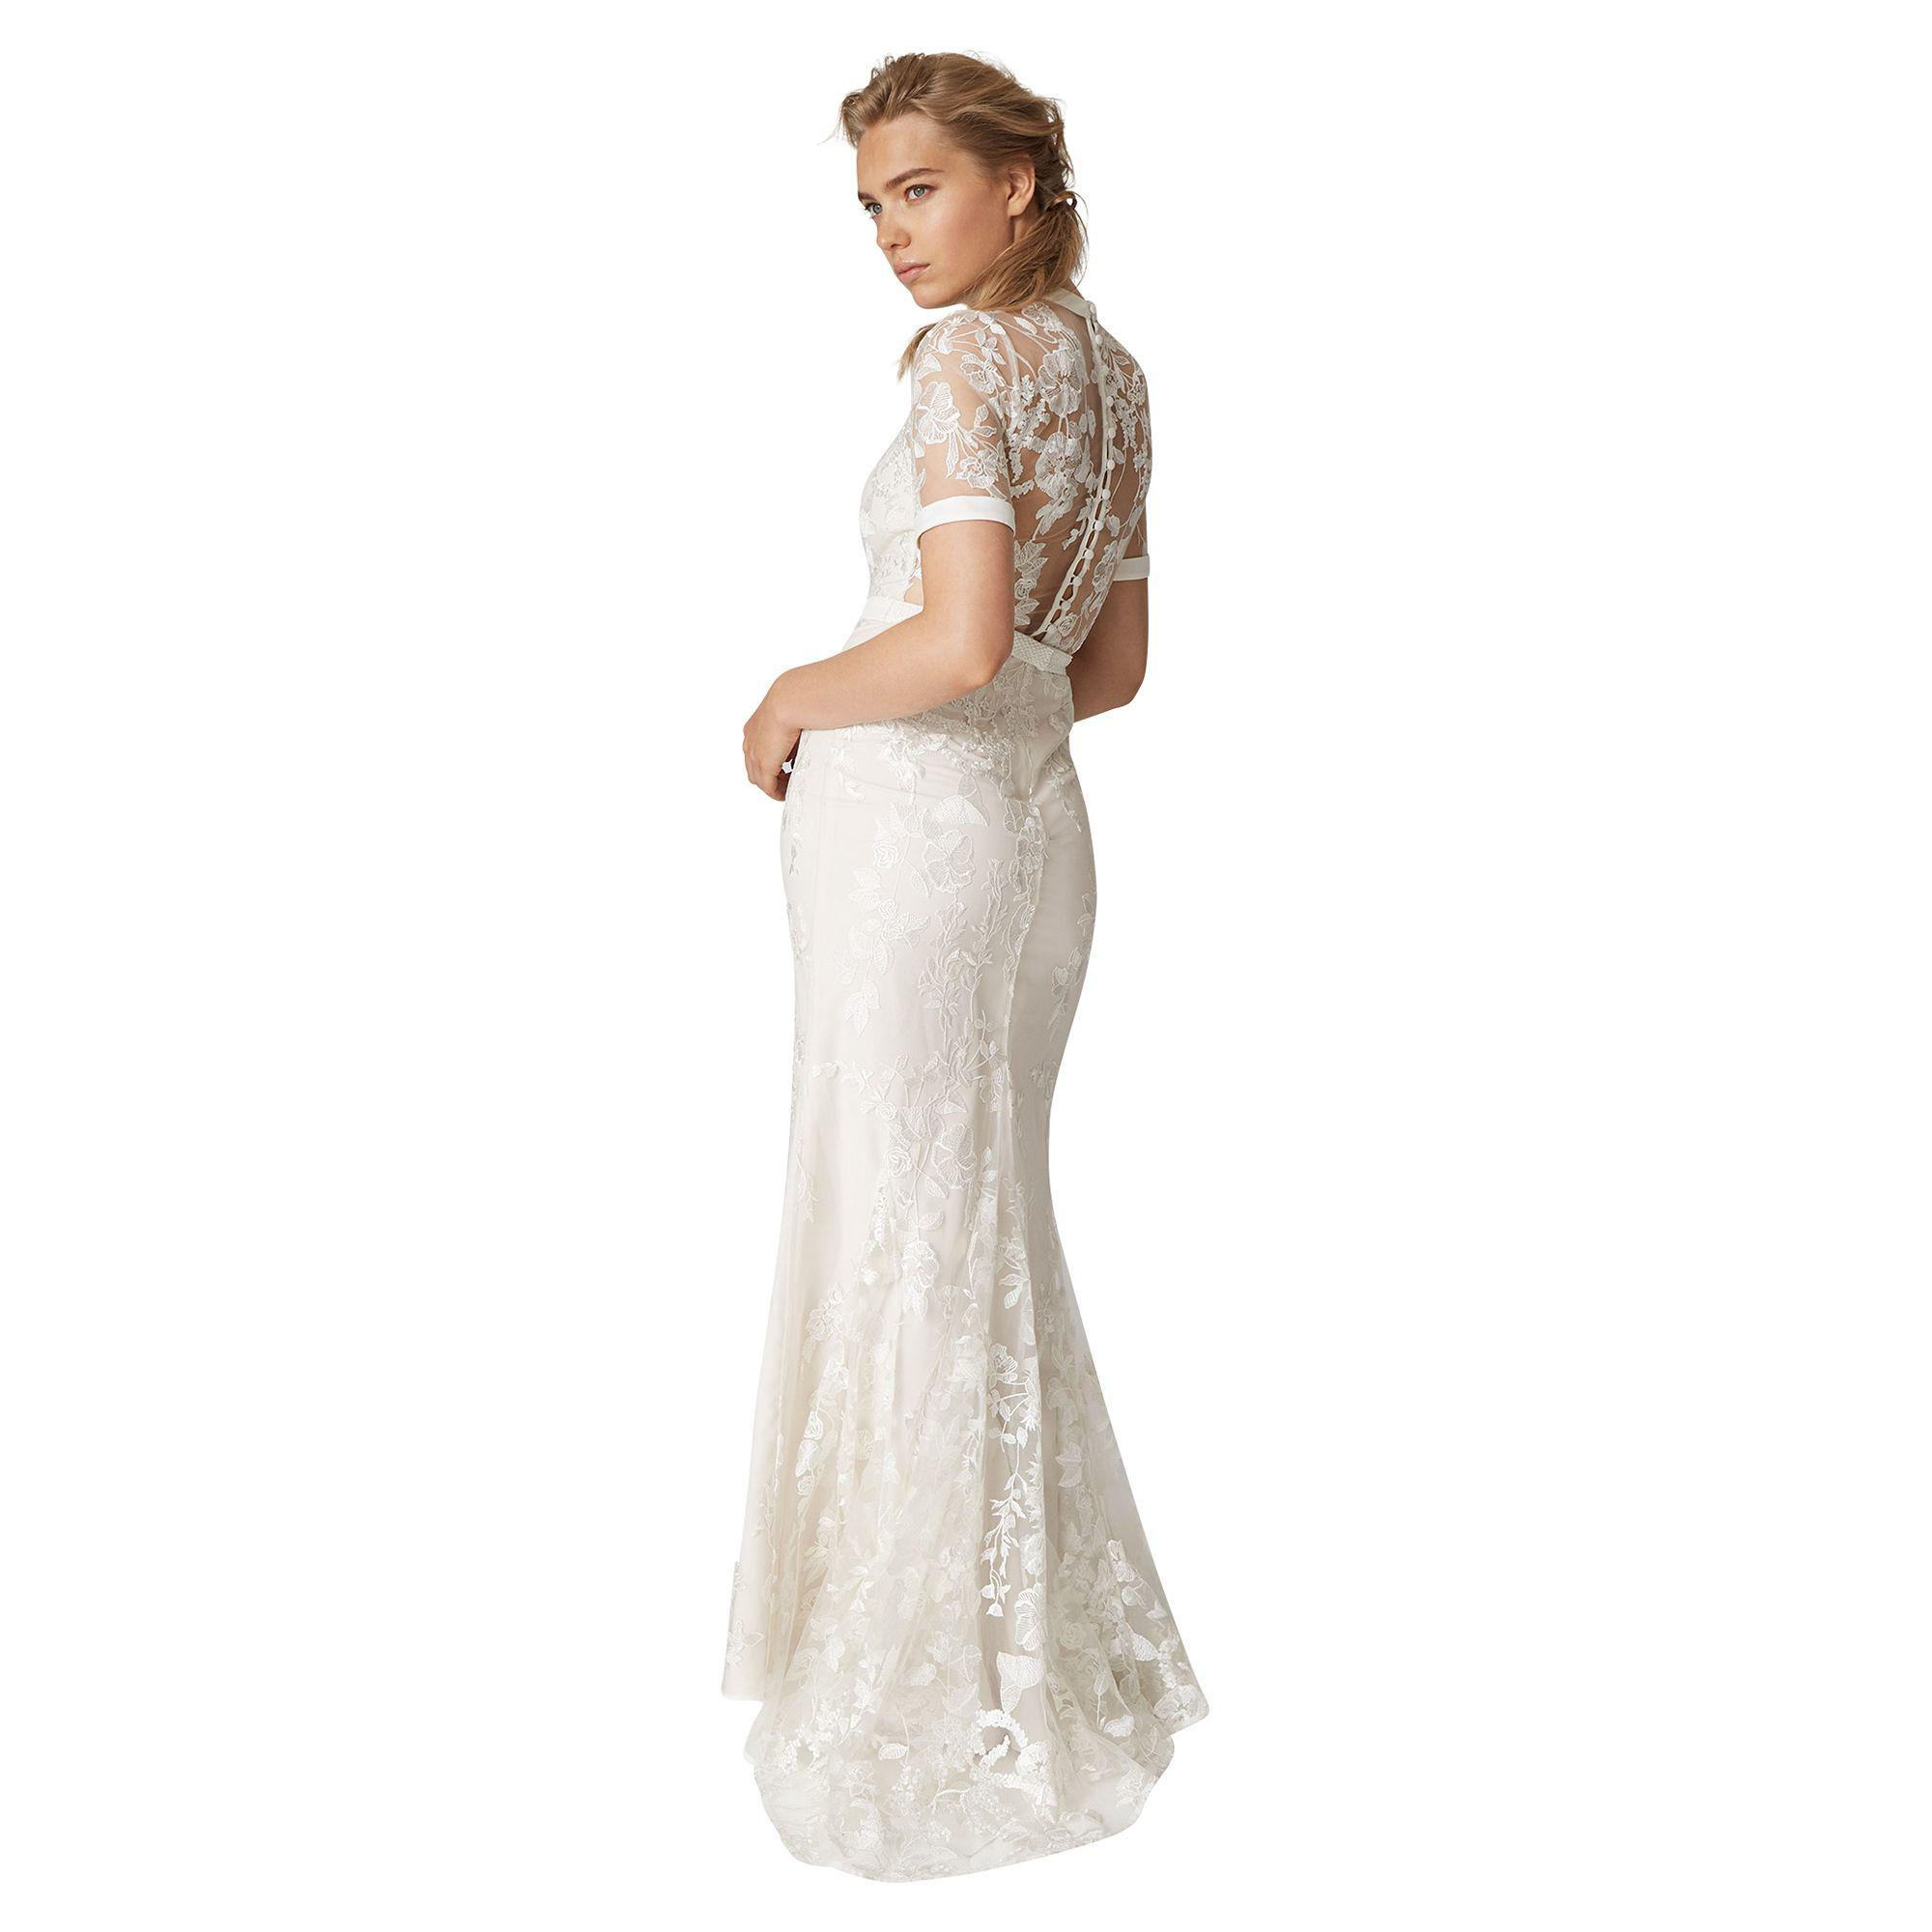 490048d11aedf Phase Eight - Natural Poppy Embroidered Bridal Dress - Lyst. View fullscreen